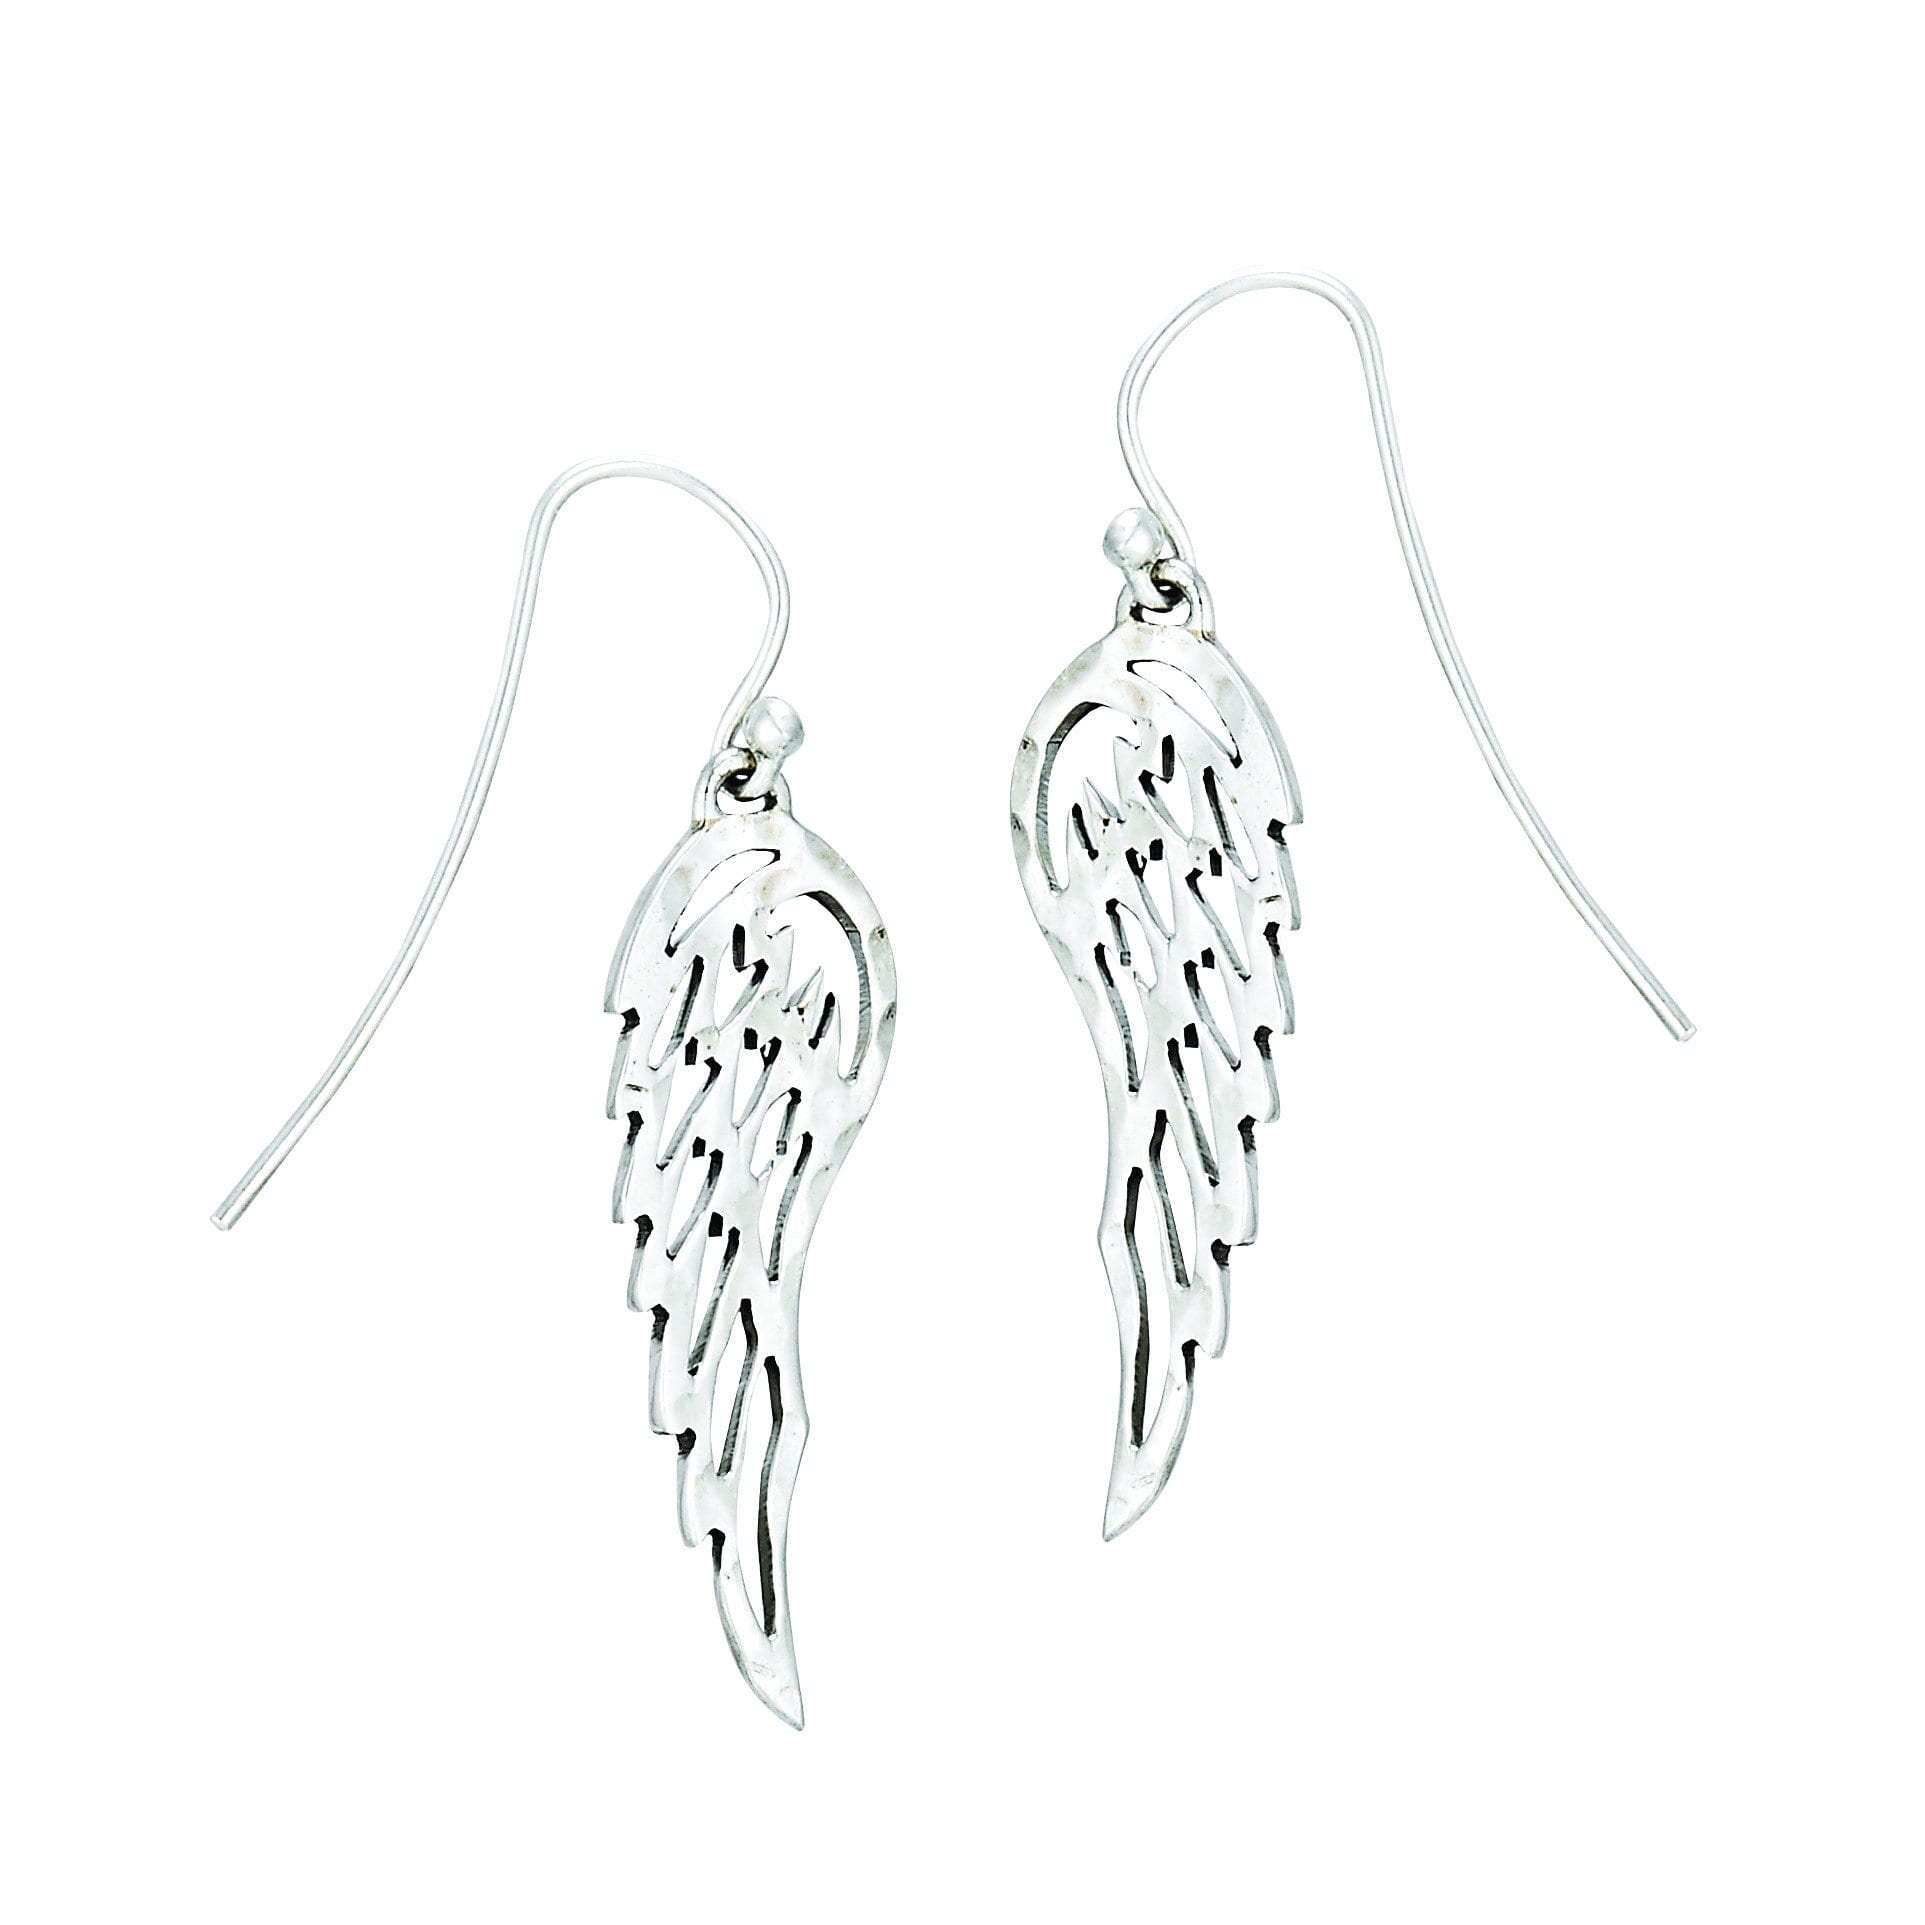 Sku 21592 Categories Collections Plata Sterling Silver Earrings Tags Angel Wing Cut Out Dangle Ss